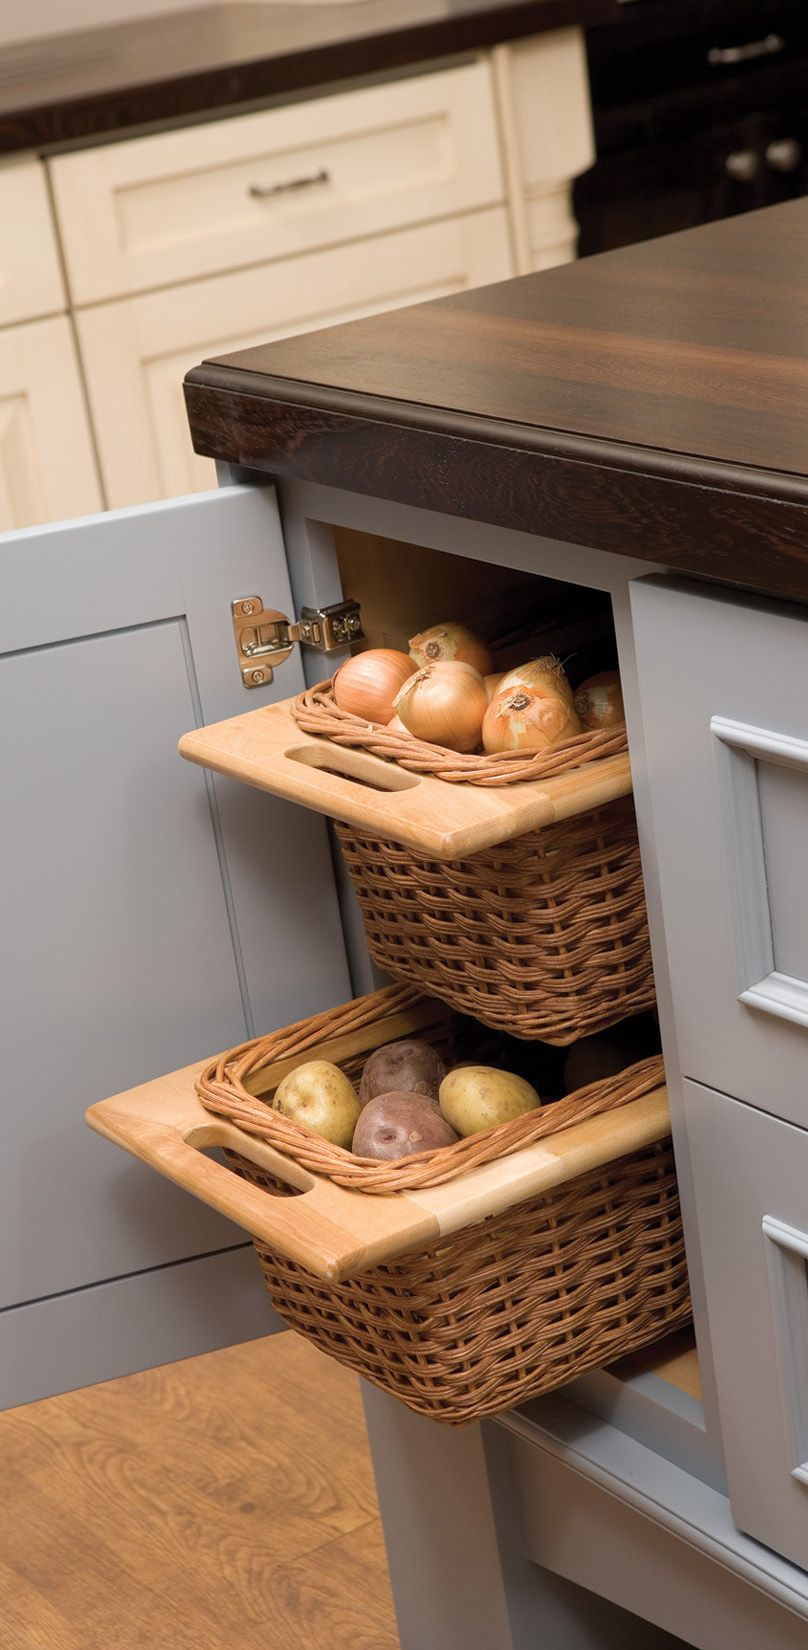 Pull Out Basket Cabinet Storage Open Weave Baskets Offer Popular Storage For Pantry Organiza Kitchen Storage Solutions No Pantry Solutions Kitchen Remodel